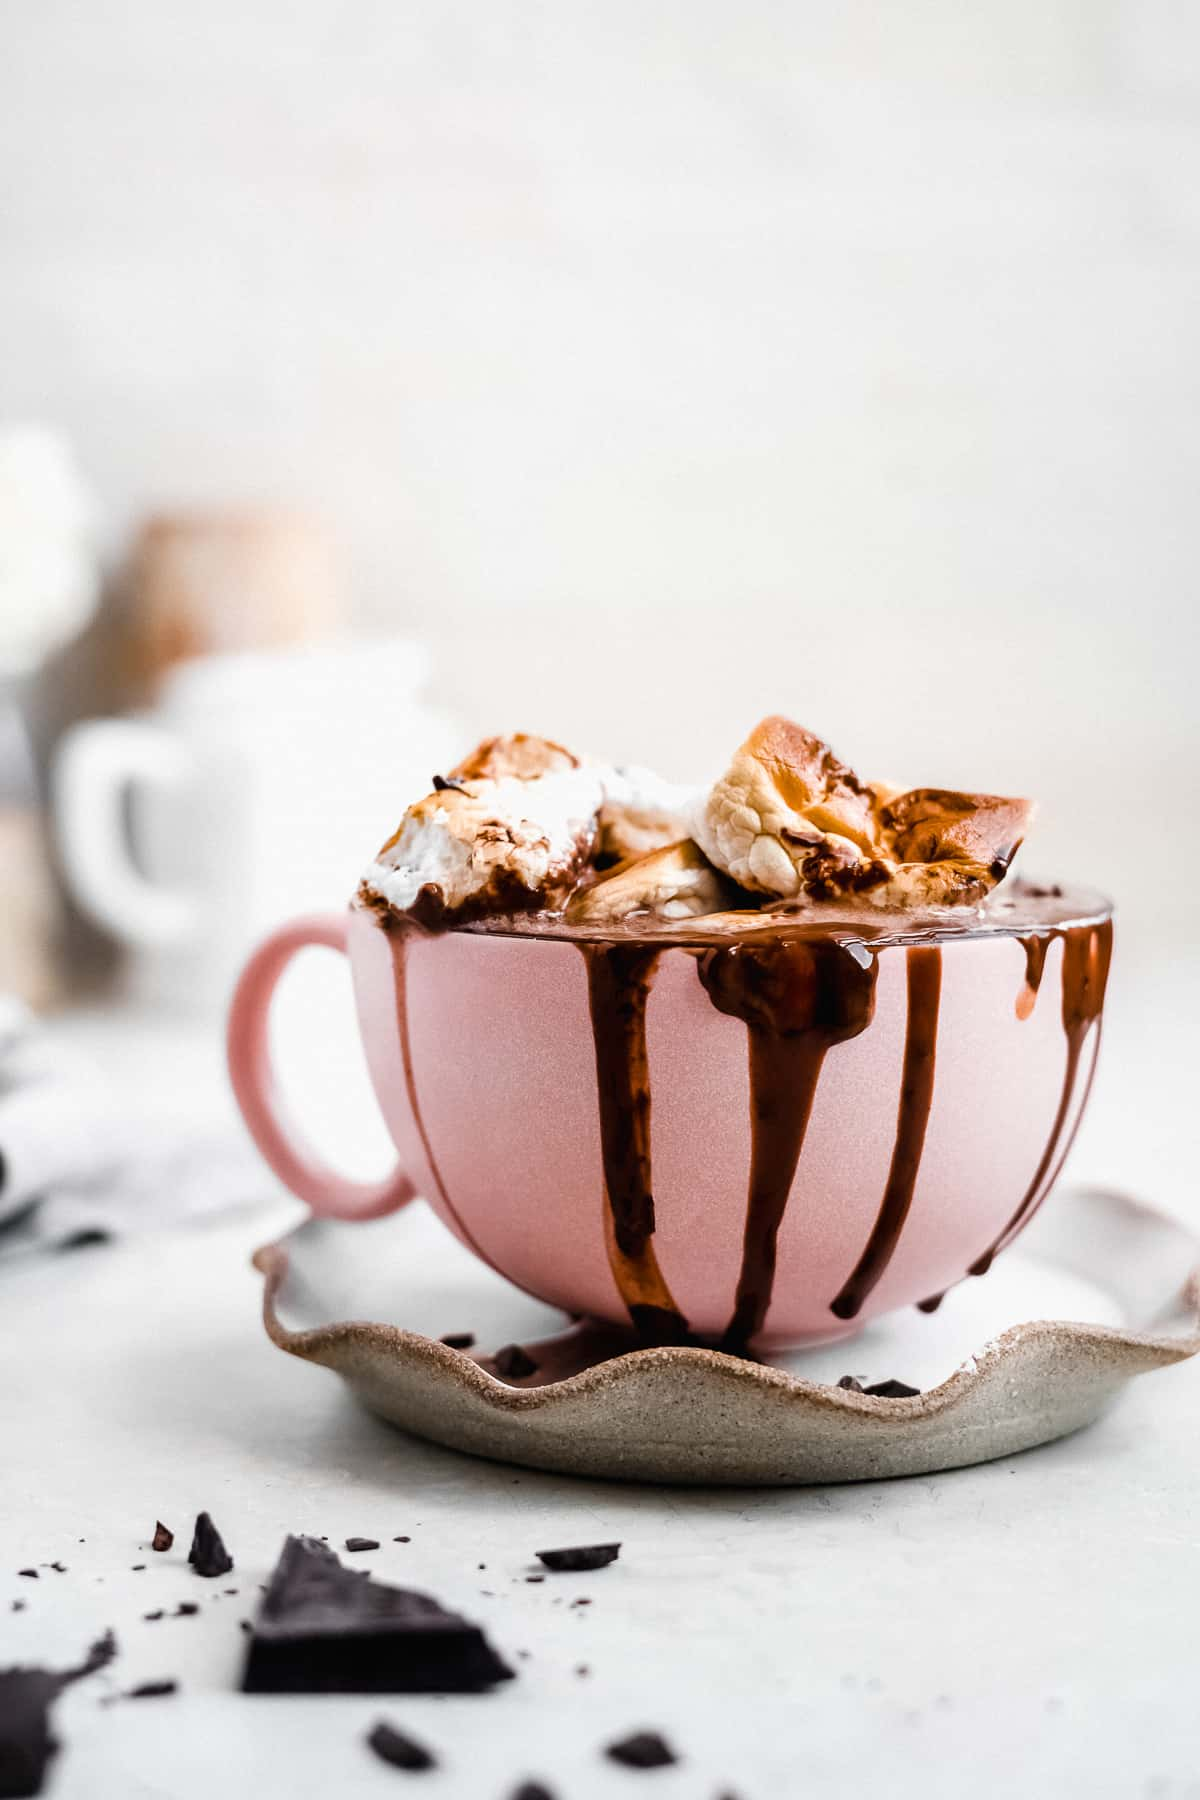 Side view of large pink mug sitting on top of a grey scalloped plate and filled to the brim with Swoon-worthy Dairy-free Hot Chocolate.  Chocolate is running down the sides of the mug.